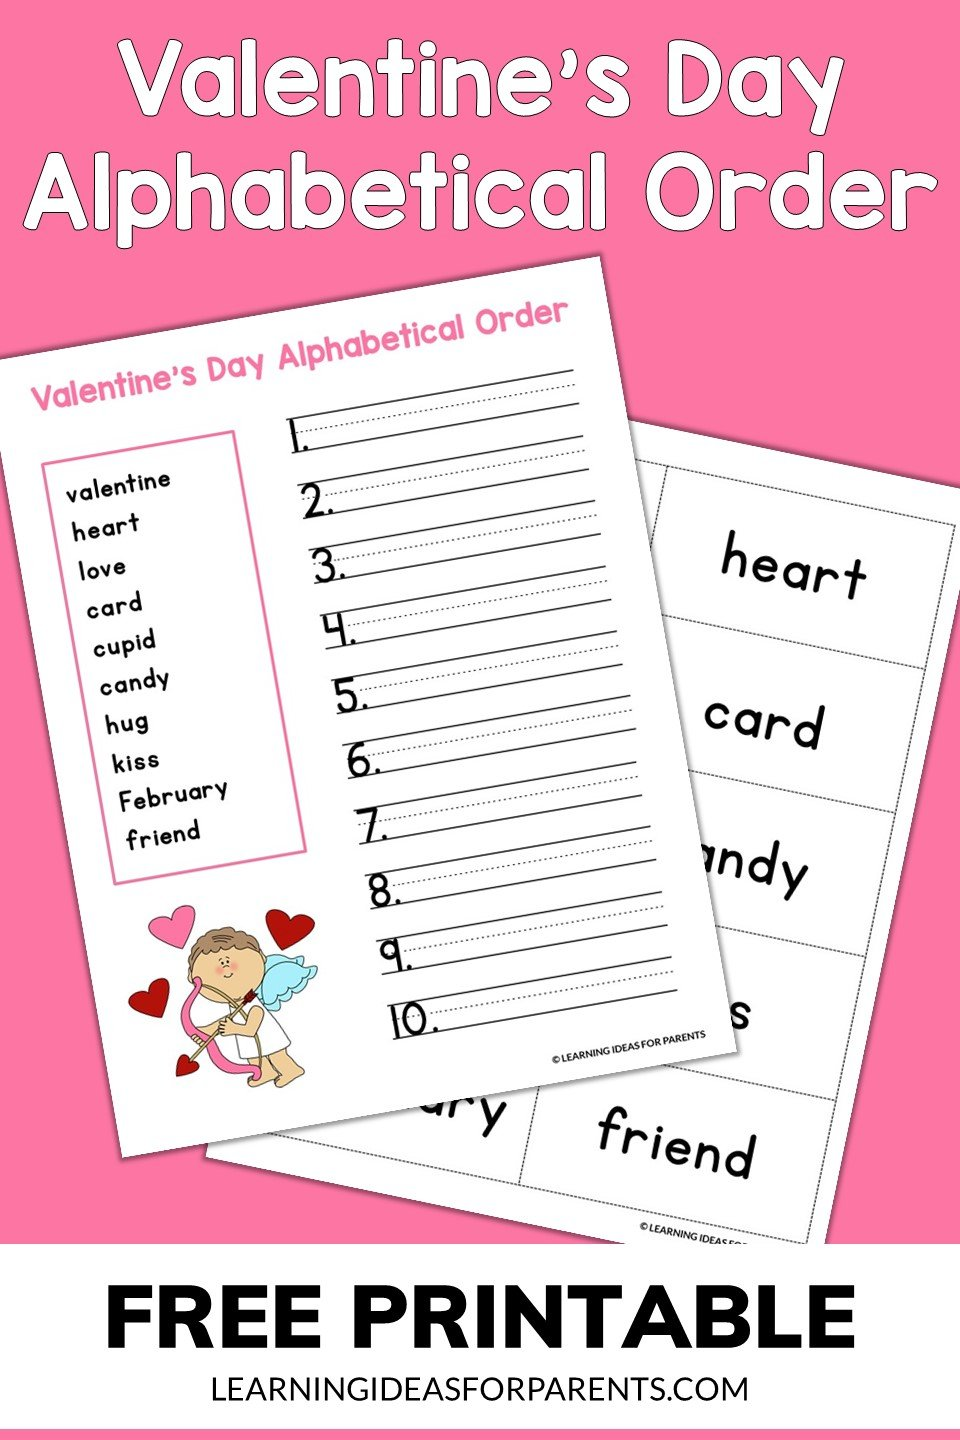 Free printable Valentine's Day alphabetical order activity